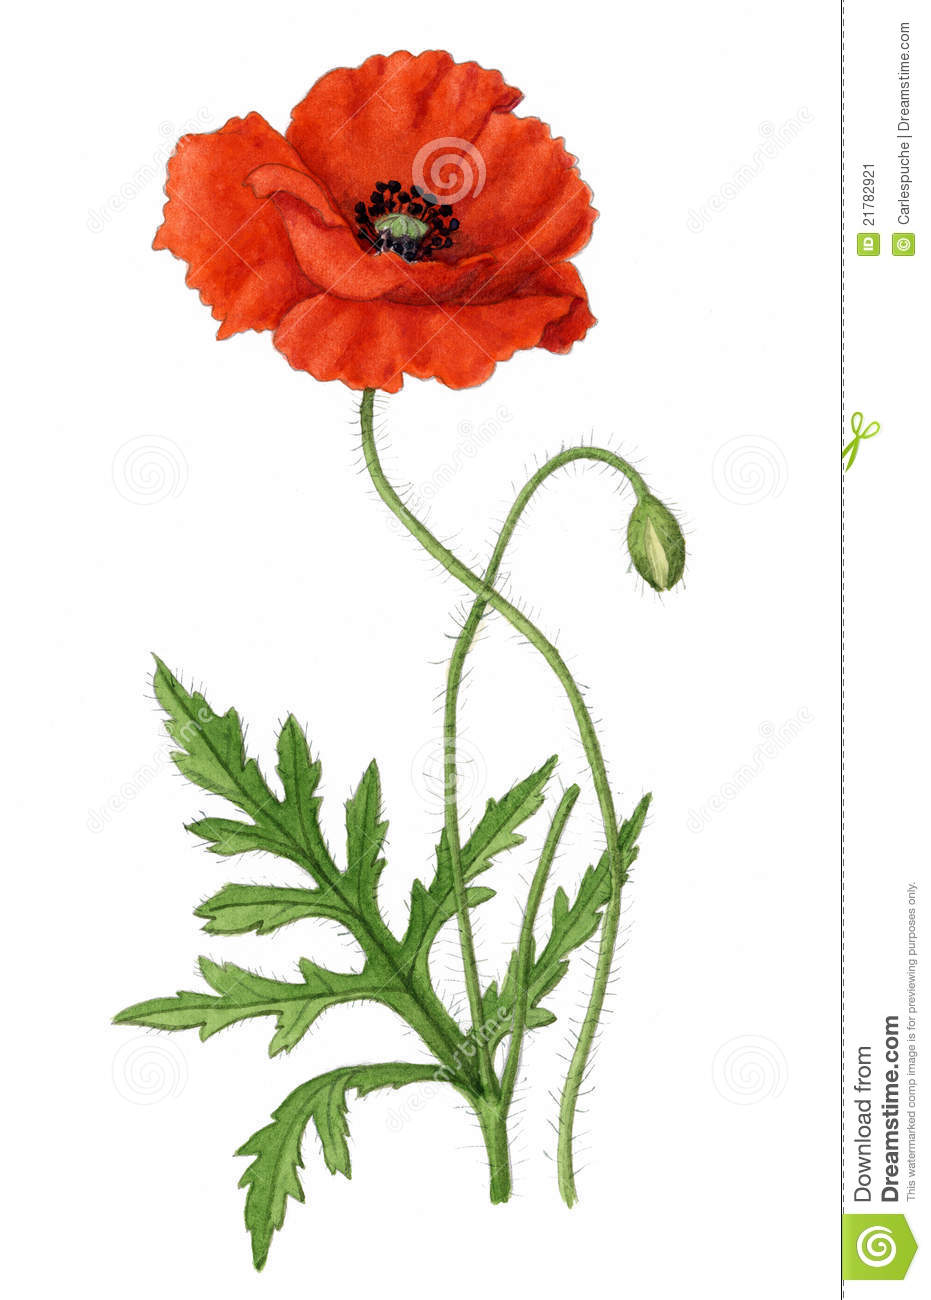 Corn Poppy Illustration (Papaver Rhoeas) Stock Image - Image: 21782921